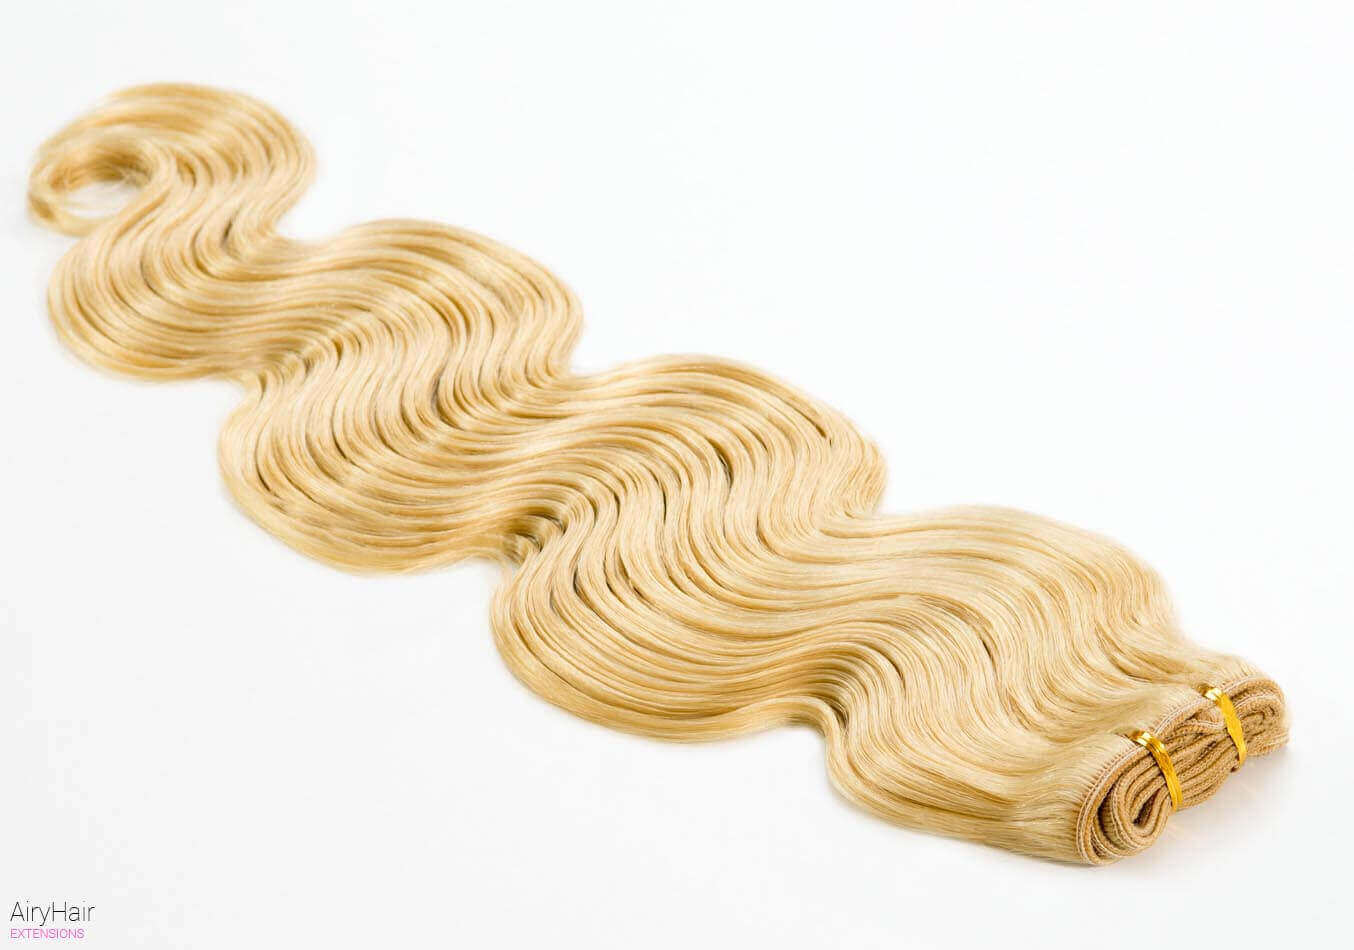 Weft / weave hair from AiryHair.com